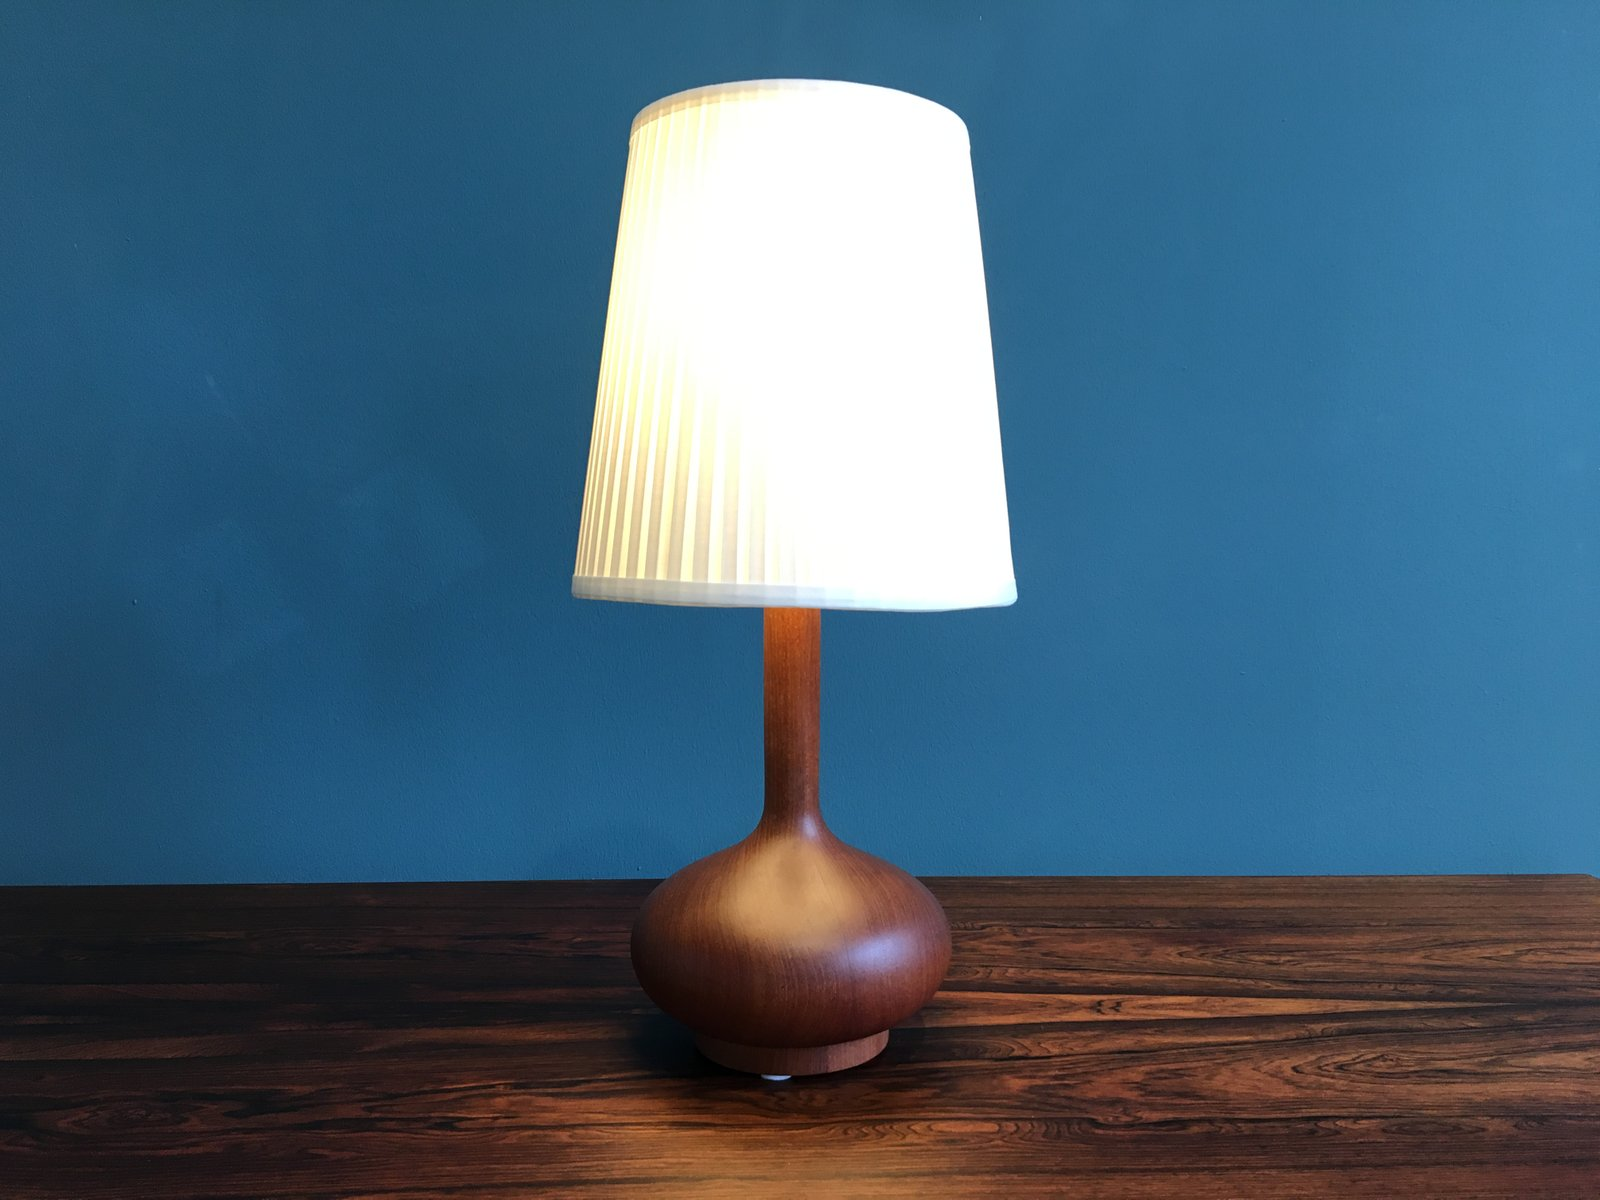 Vintage Scandinavian Wooden Table Lamp, 1960s for sale at ...